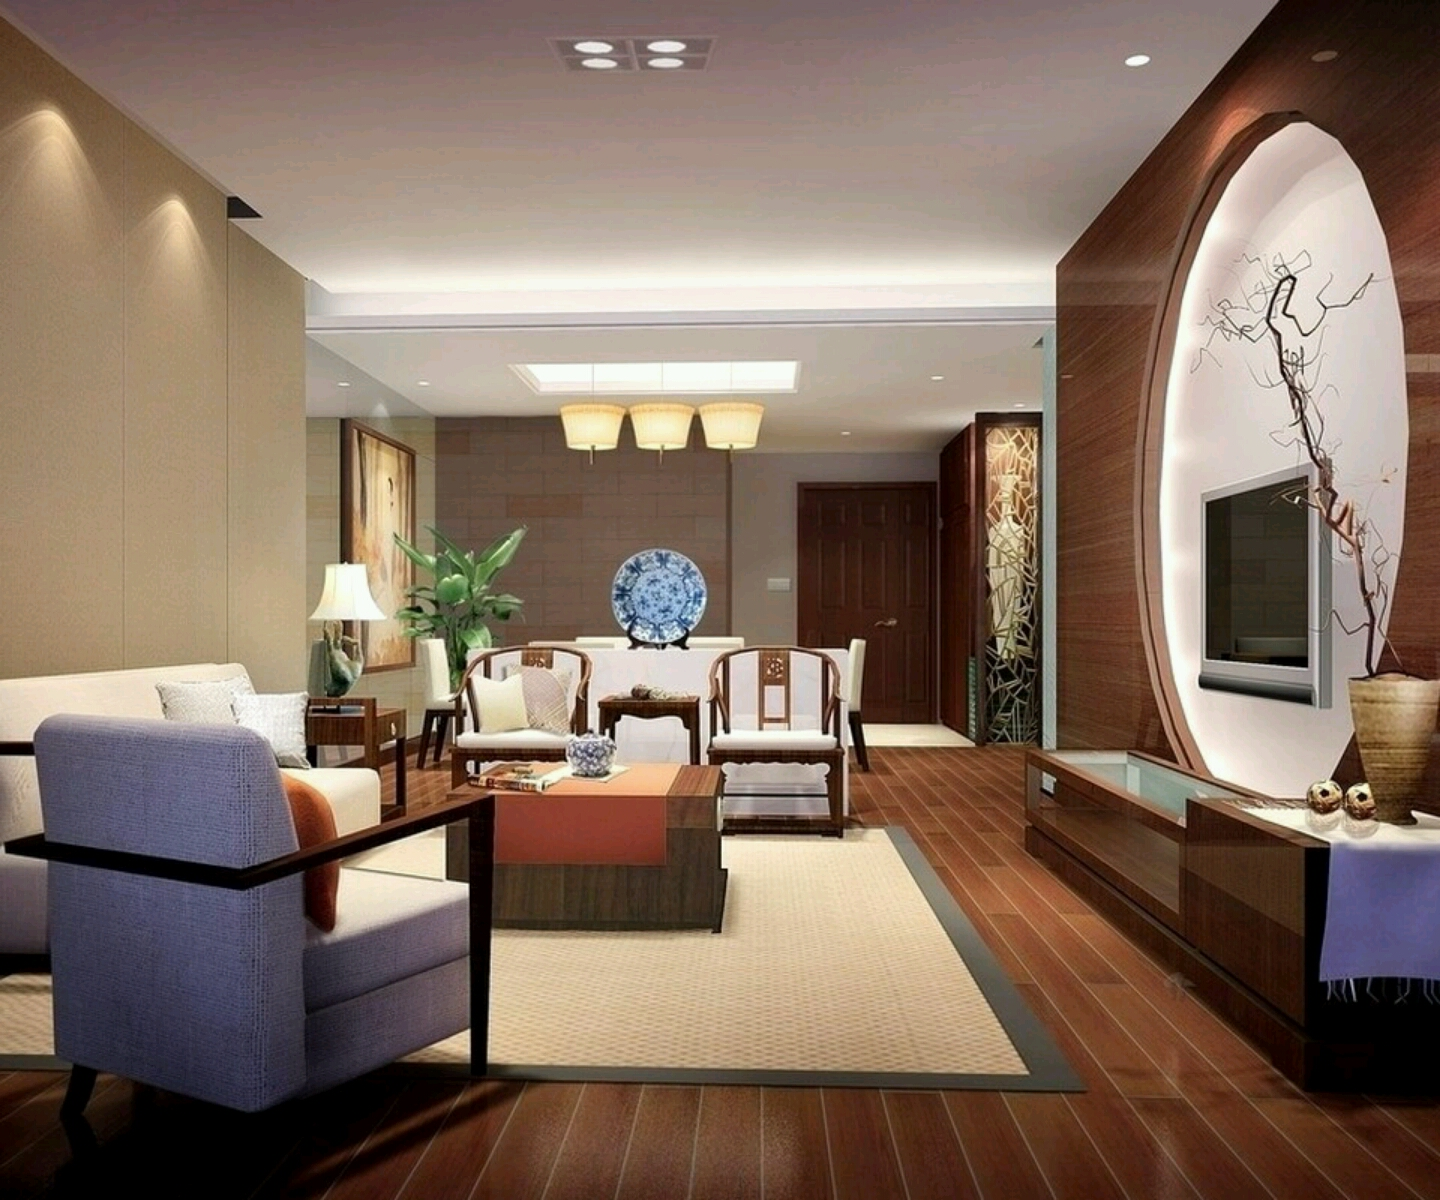 Luxury homes interior decoration living room designs ideas for Decor ideas for living room